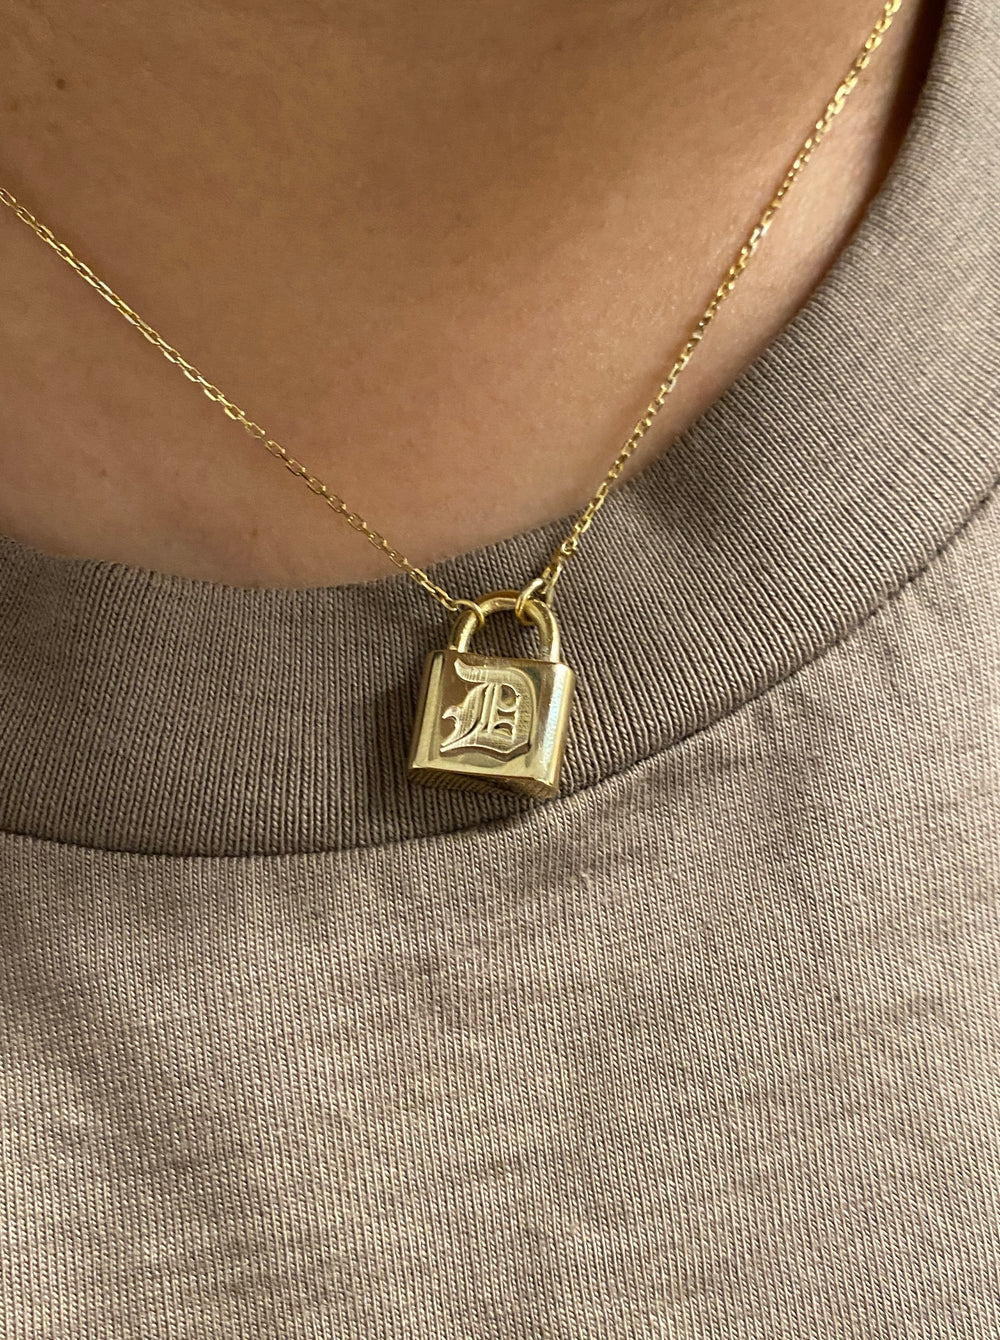 THE 14KT EMBOSSED OLD ENGLISH LOCK NECKLACE